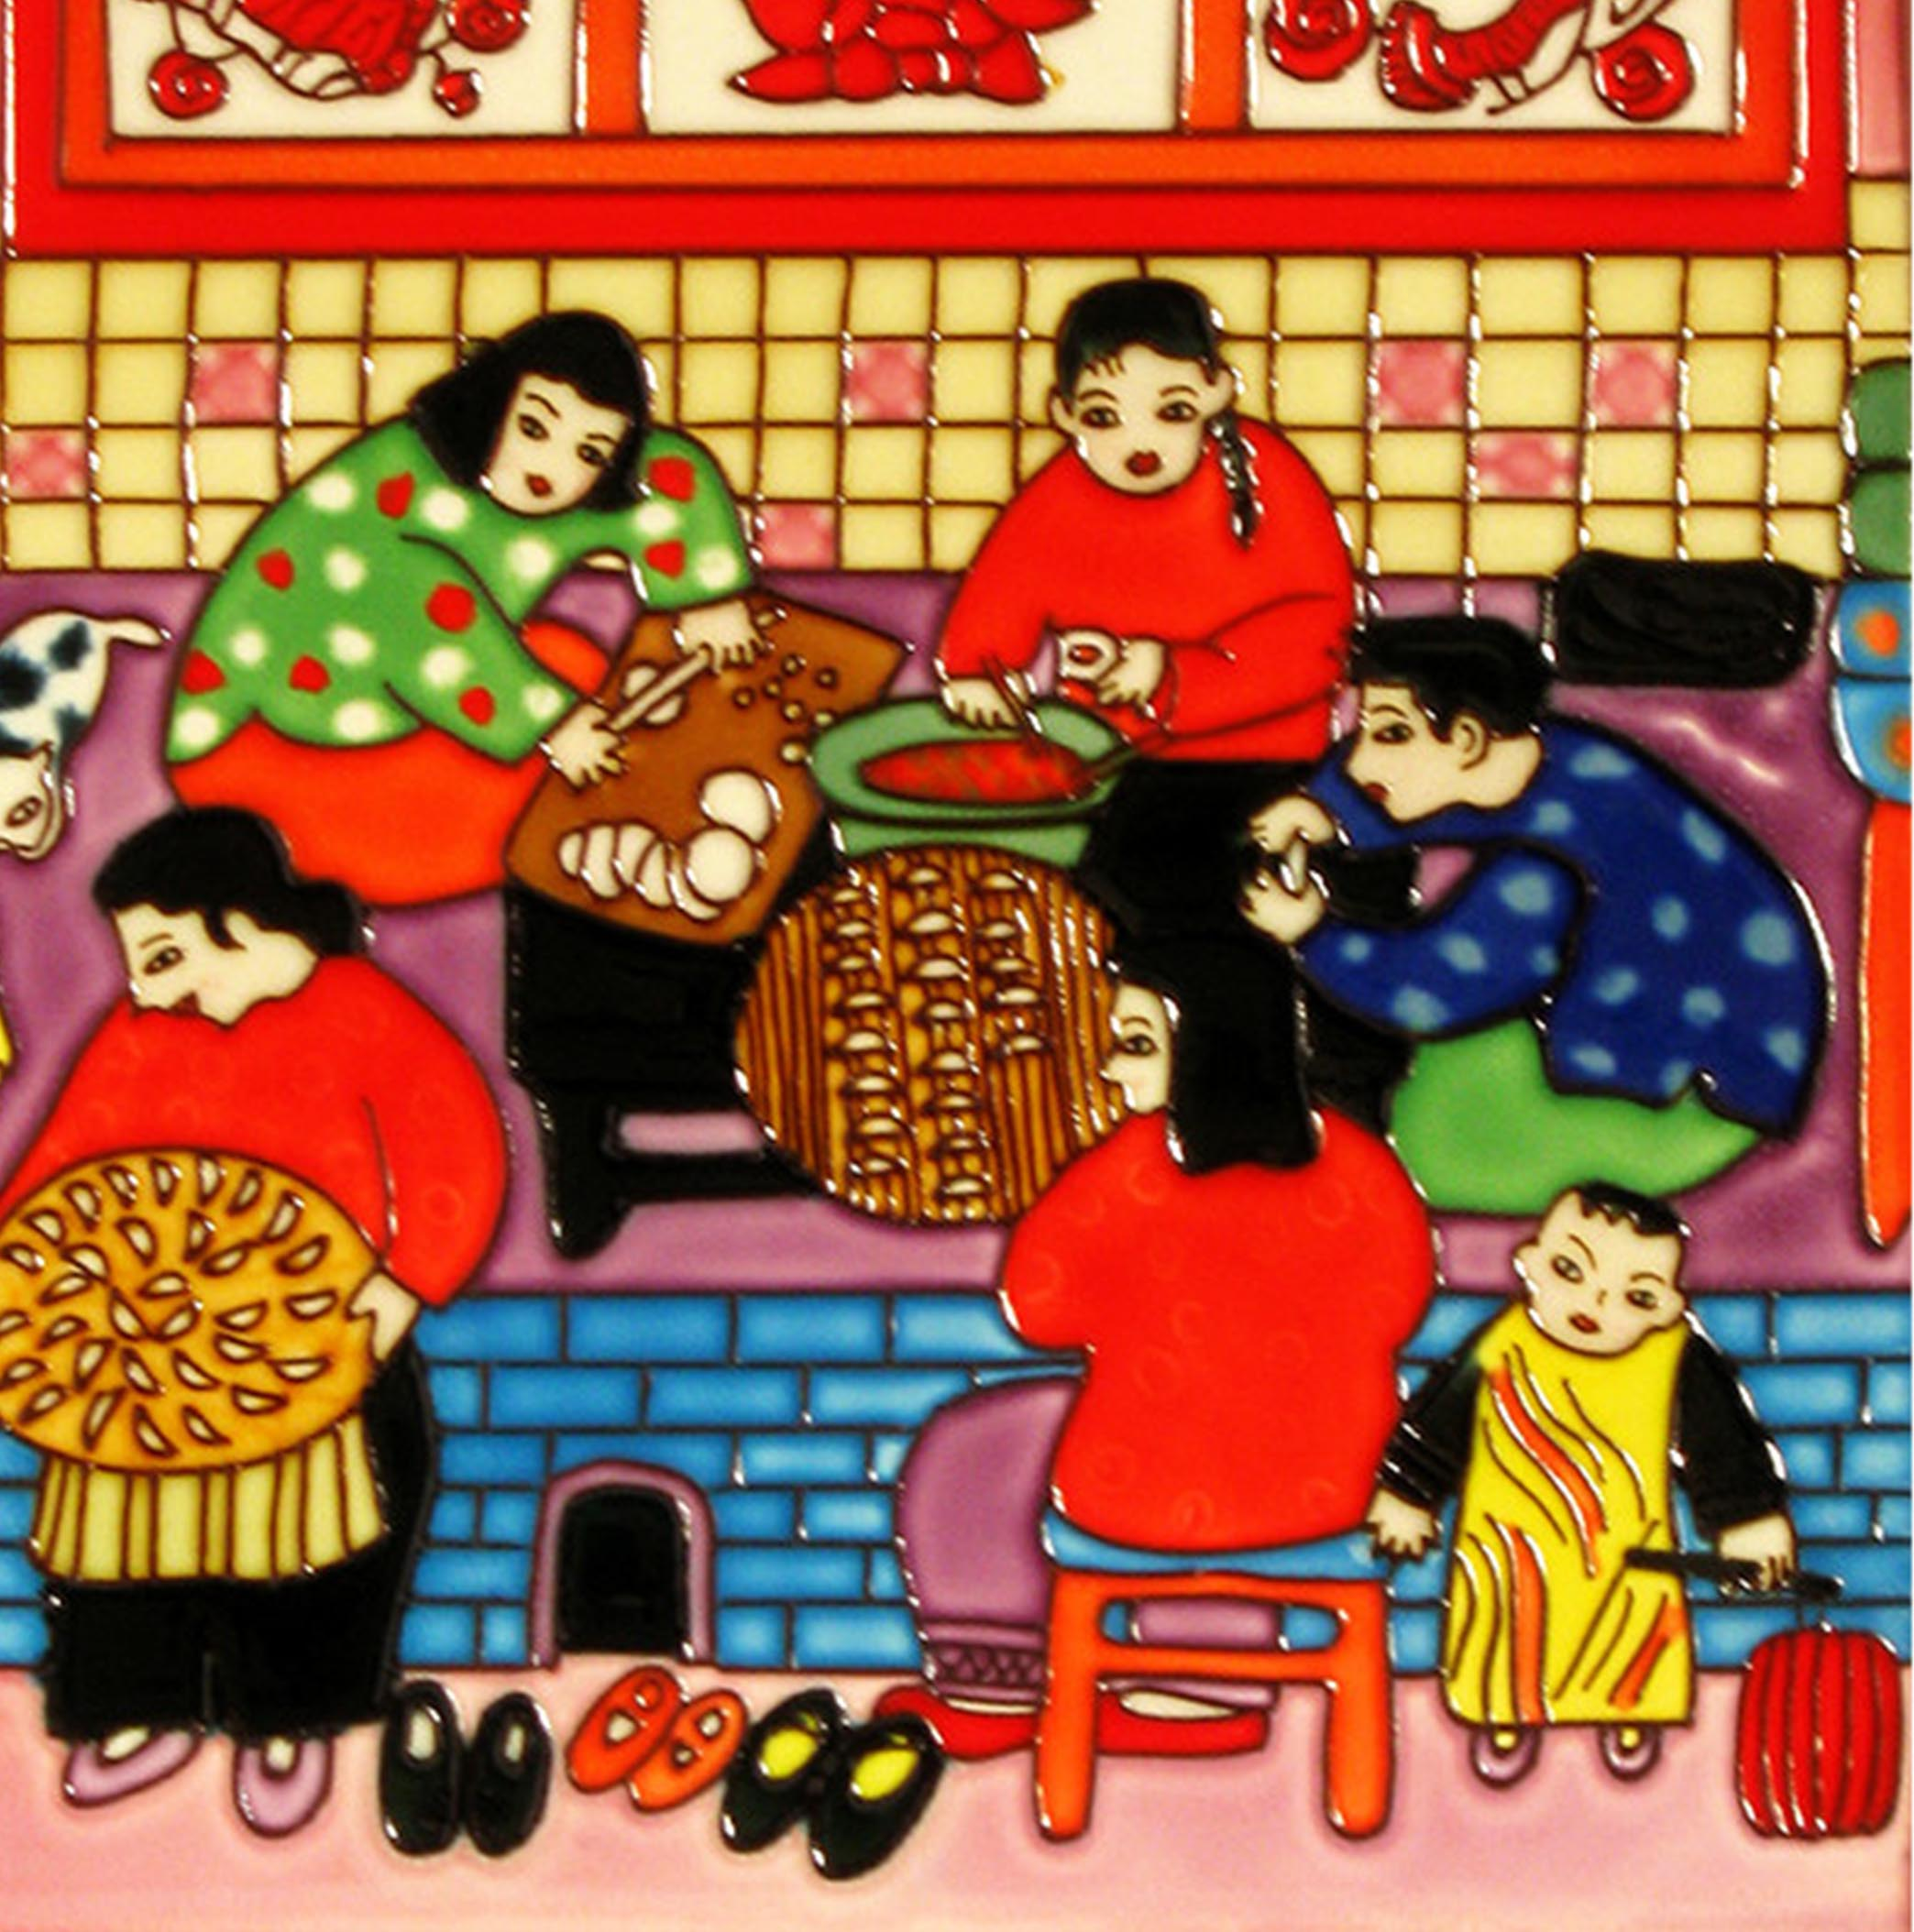 3801 Making Dumplings 30cm x 30cm Ceramic Tile